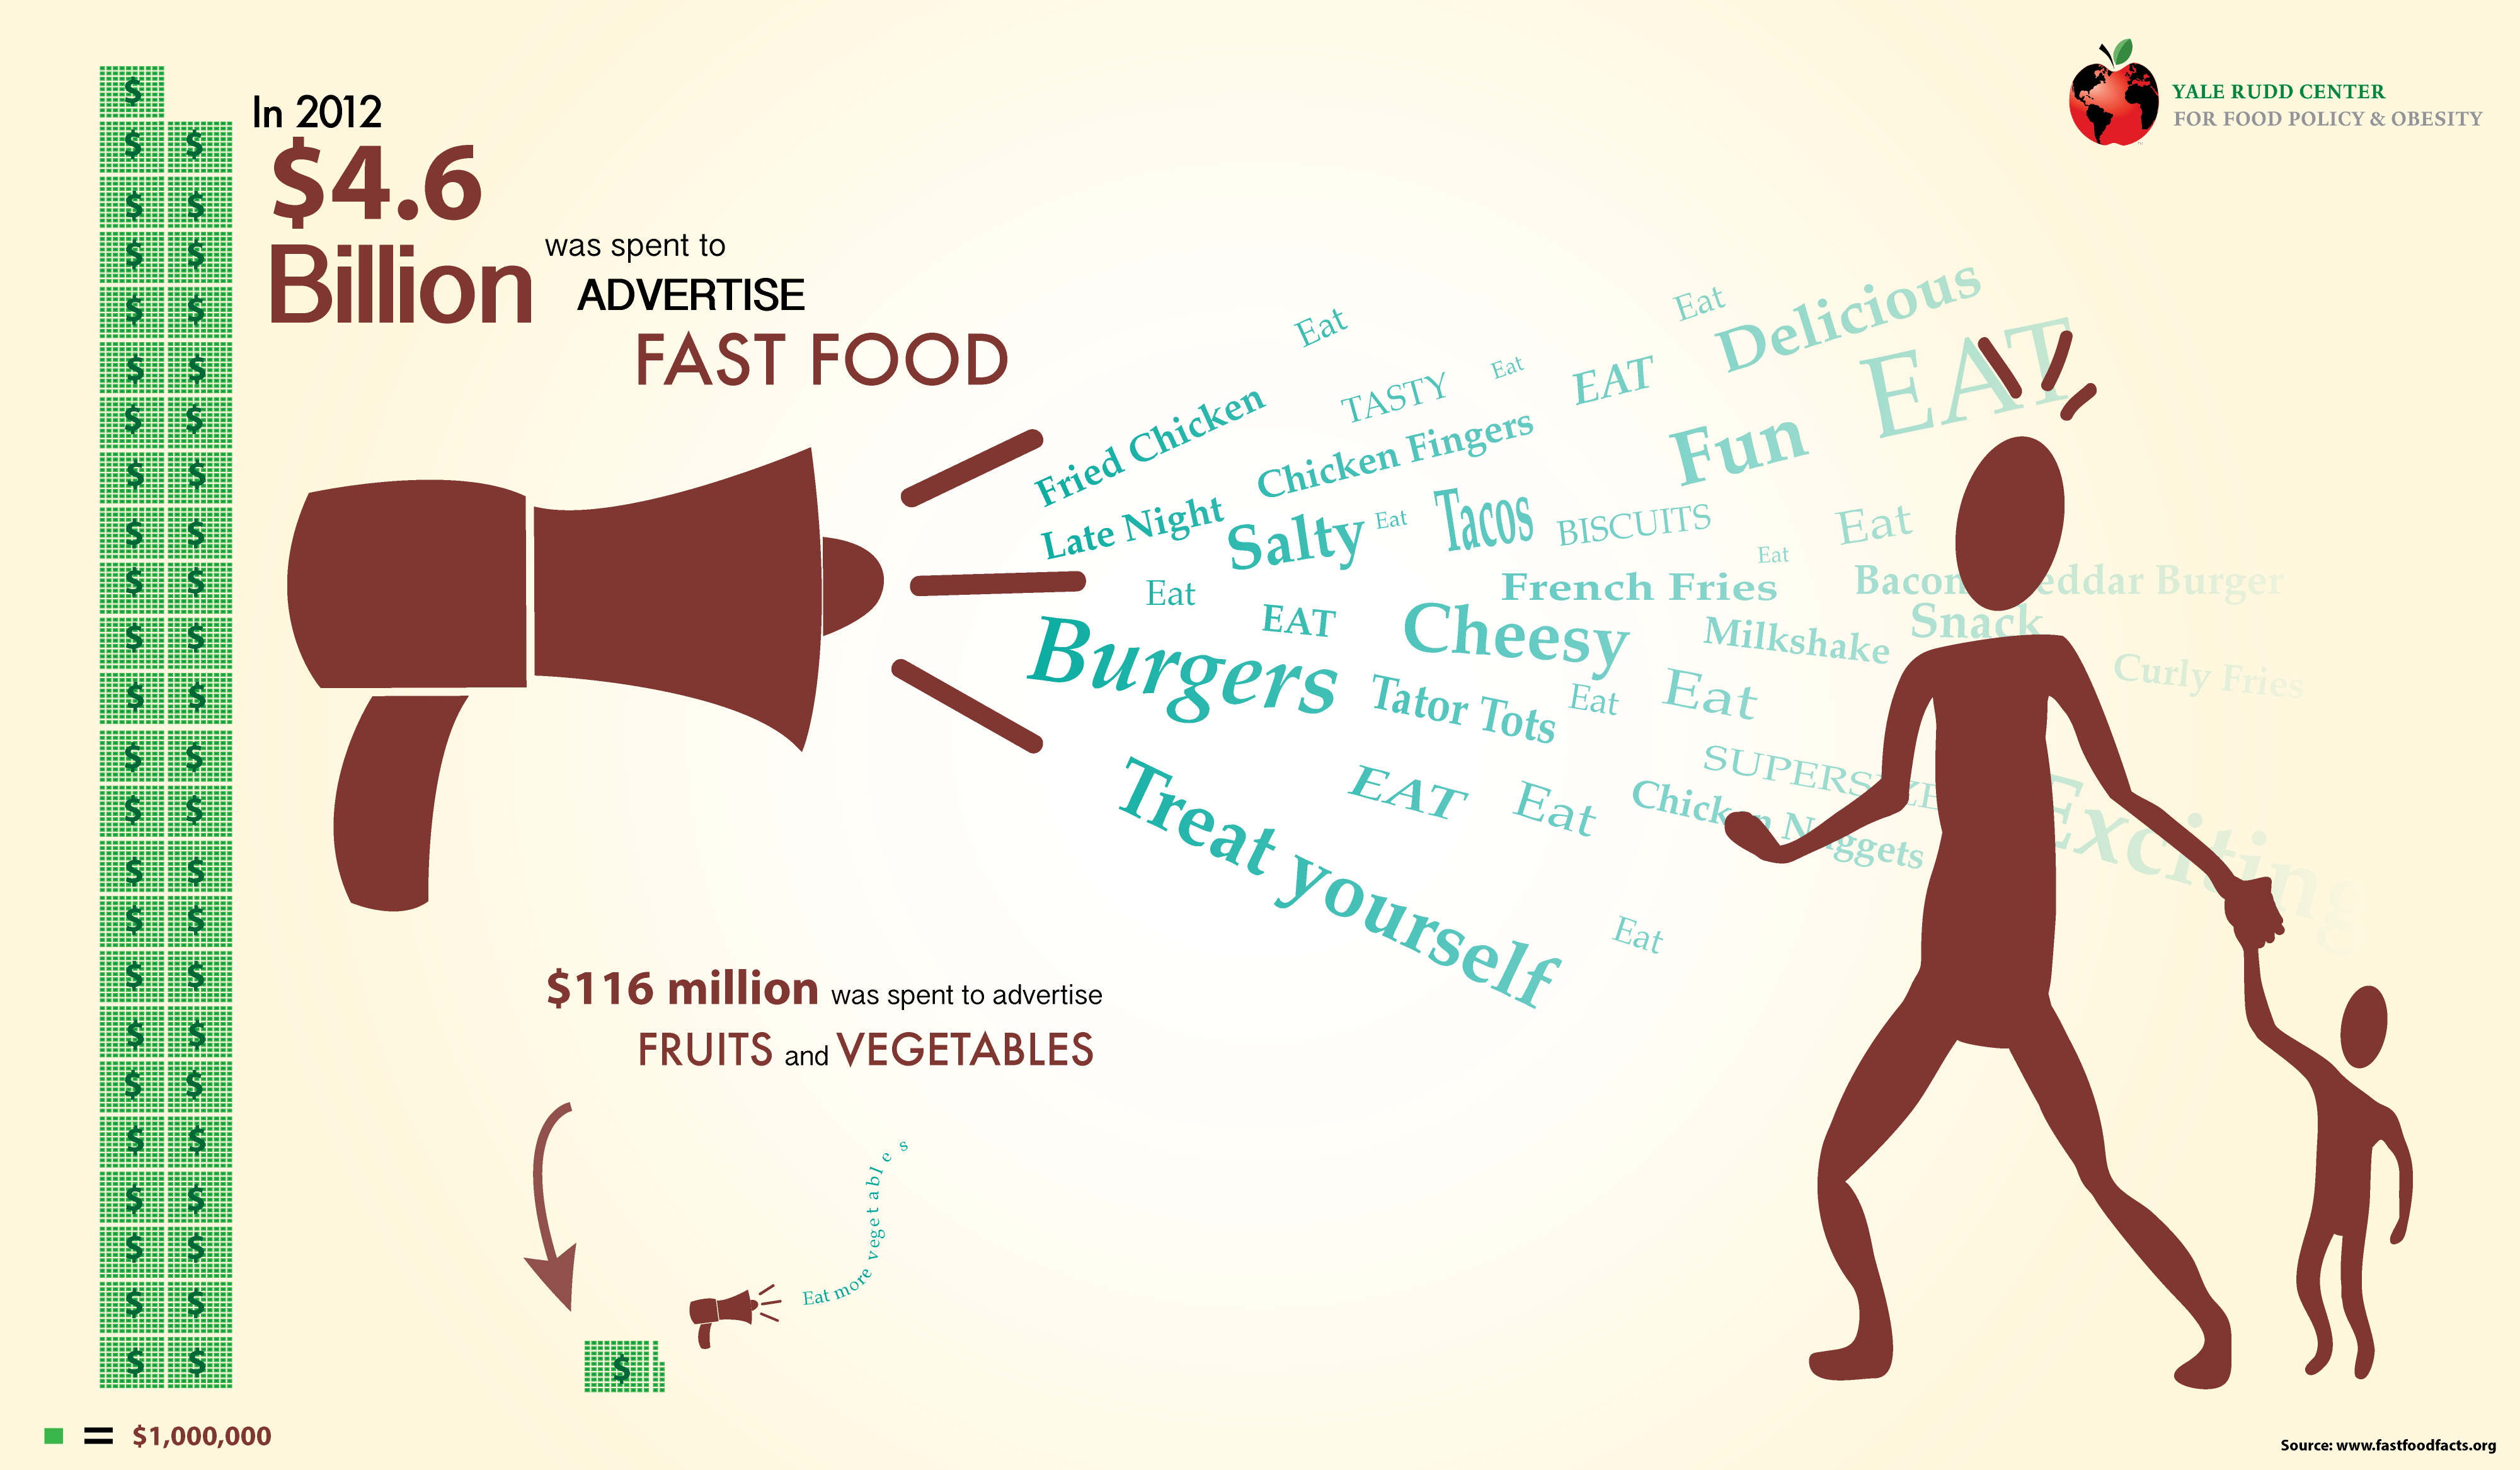 How Much Is Spent On Fast Food Advertising